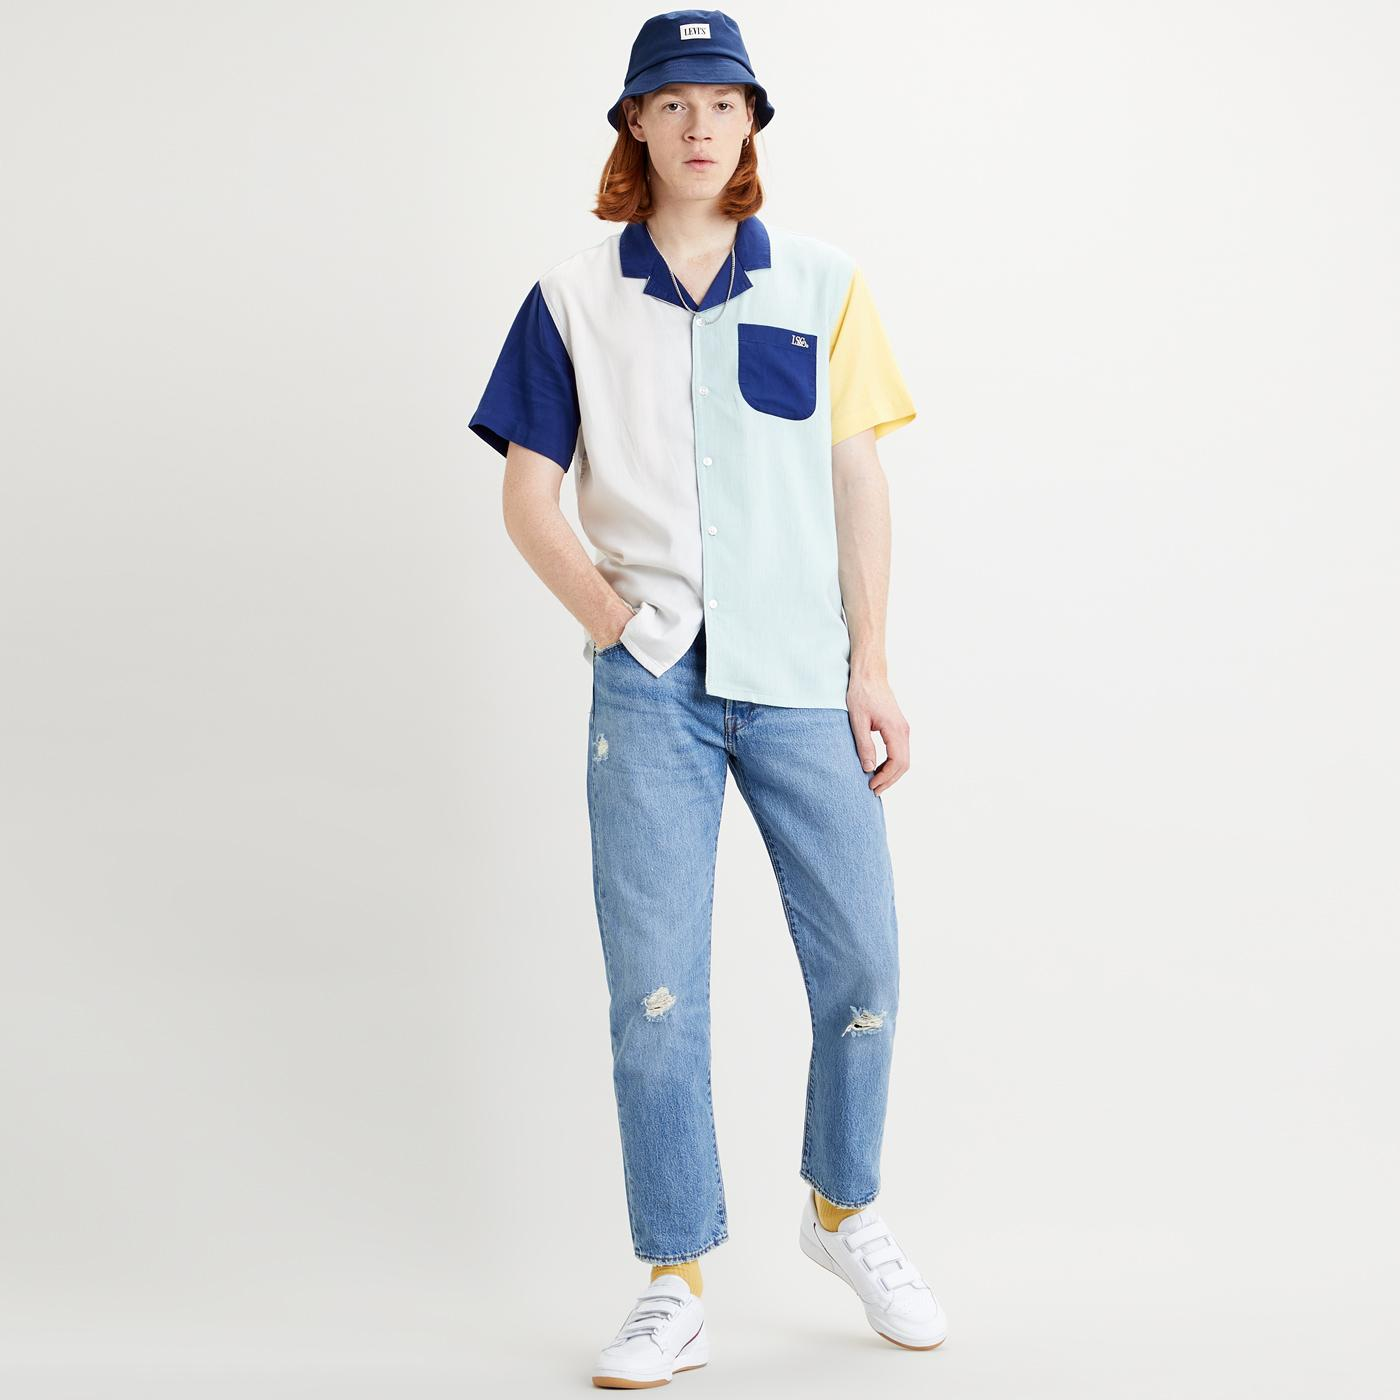 LEVI'S Cubano Retro Resort Collar Bowling Shirt HG